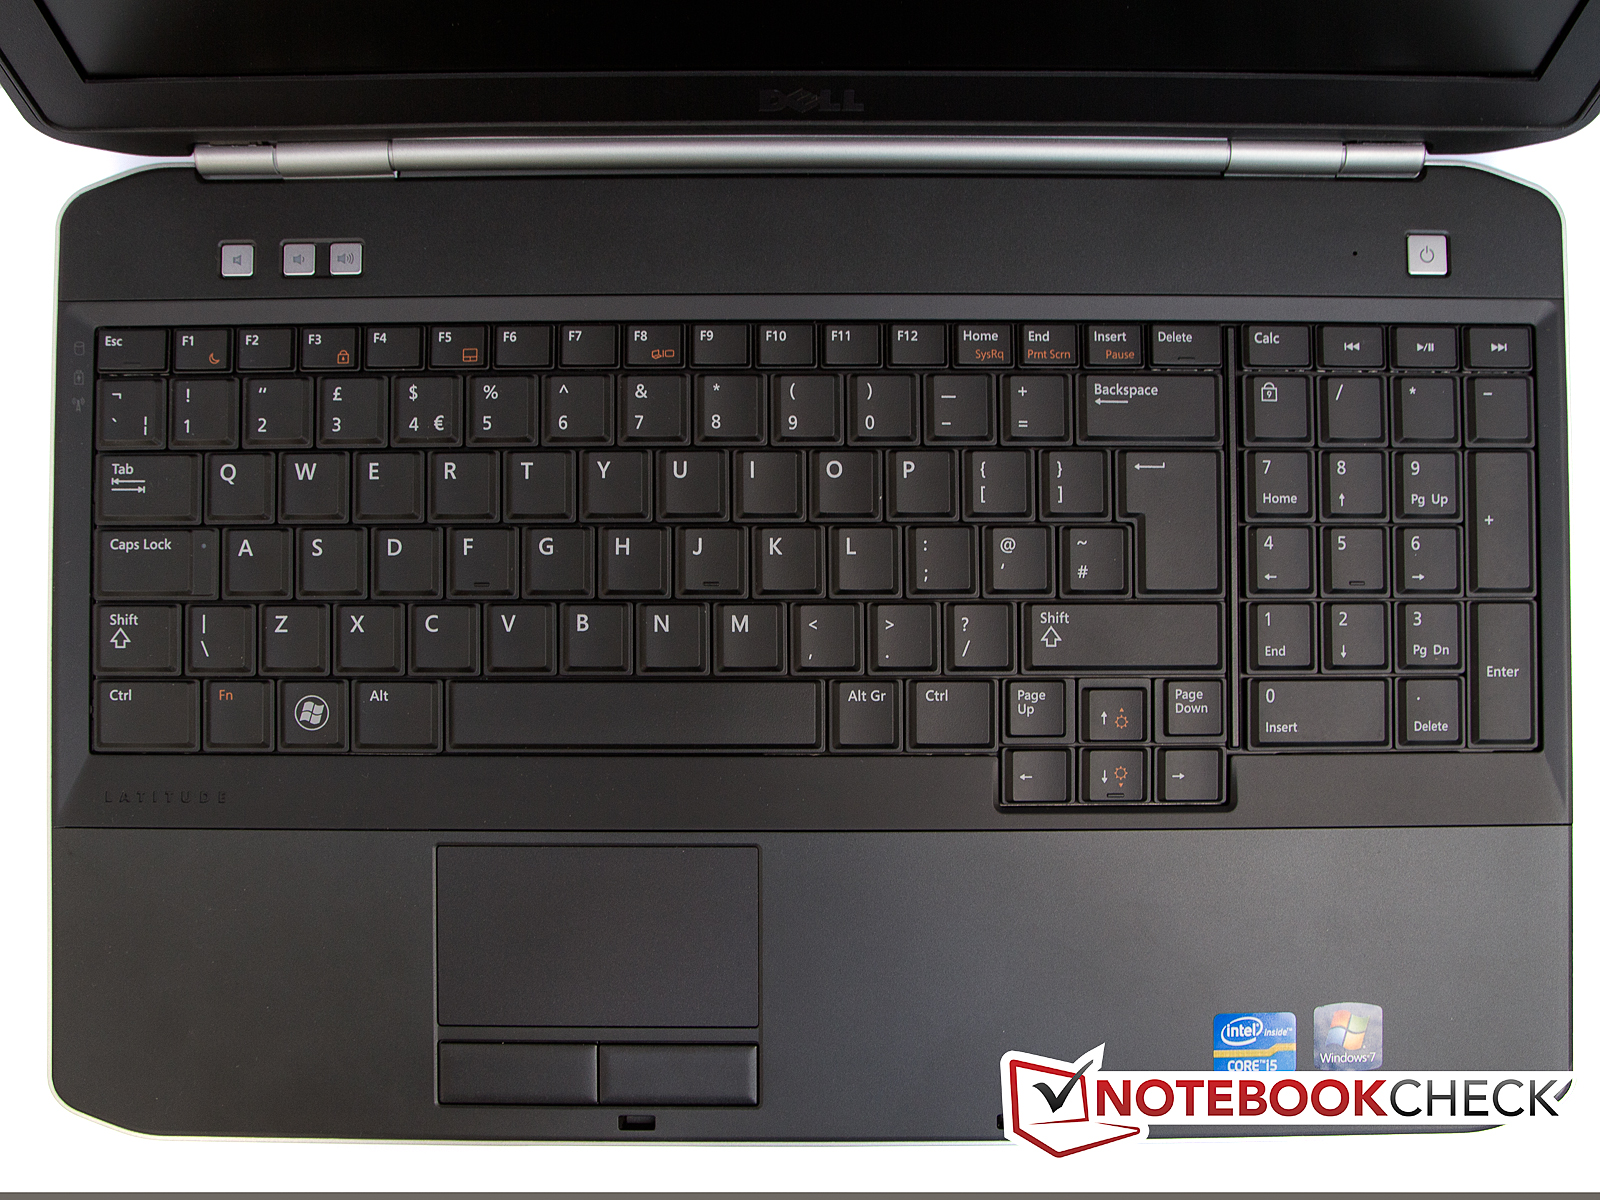 DELL LATITUDE E5520 NOTEBOOK MULTI-TOUCH TOUCHPAD DRIVER DOWNLOAD FREE